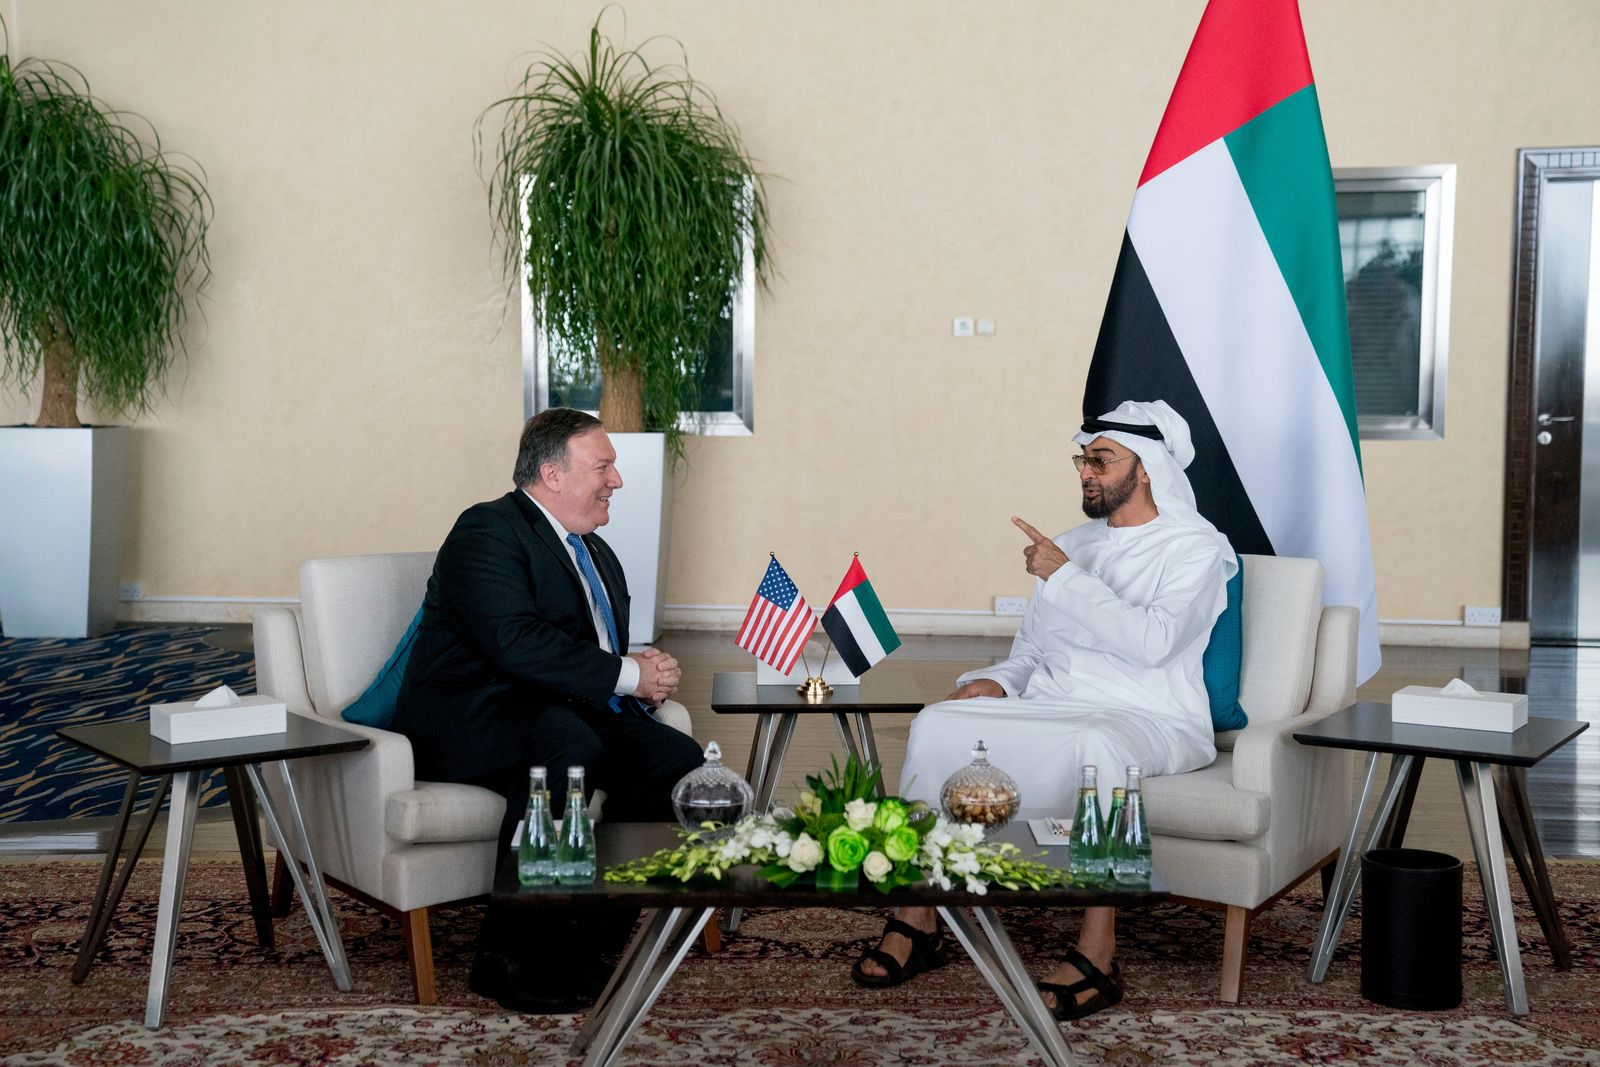 U.S. Secretary of State Mike Pompeo, left, and Abu Dhabi's Crown Prince Sheikh Mohammed bin Zayed Al Nahyan meet at the Al Shati Palace in Abu Dhabi?, United Arab Emirates, Tuesday, July 10, 2018. Pompeo is on a trip traveling to North Korea, Japan, Vietnam, Afghanistan, Abu Dhabi, and Brussels. (AP Photo/Andrew Harnik, Pool)